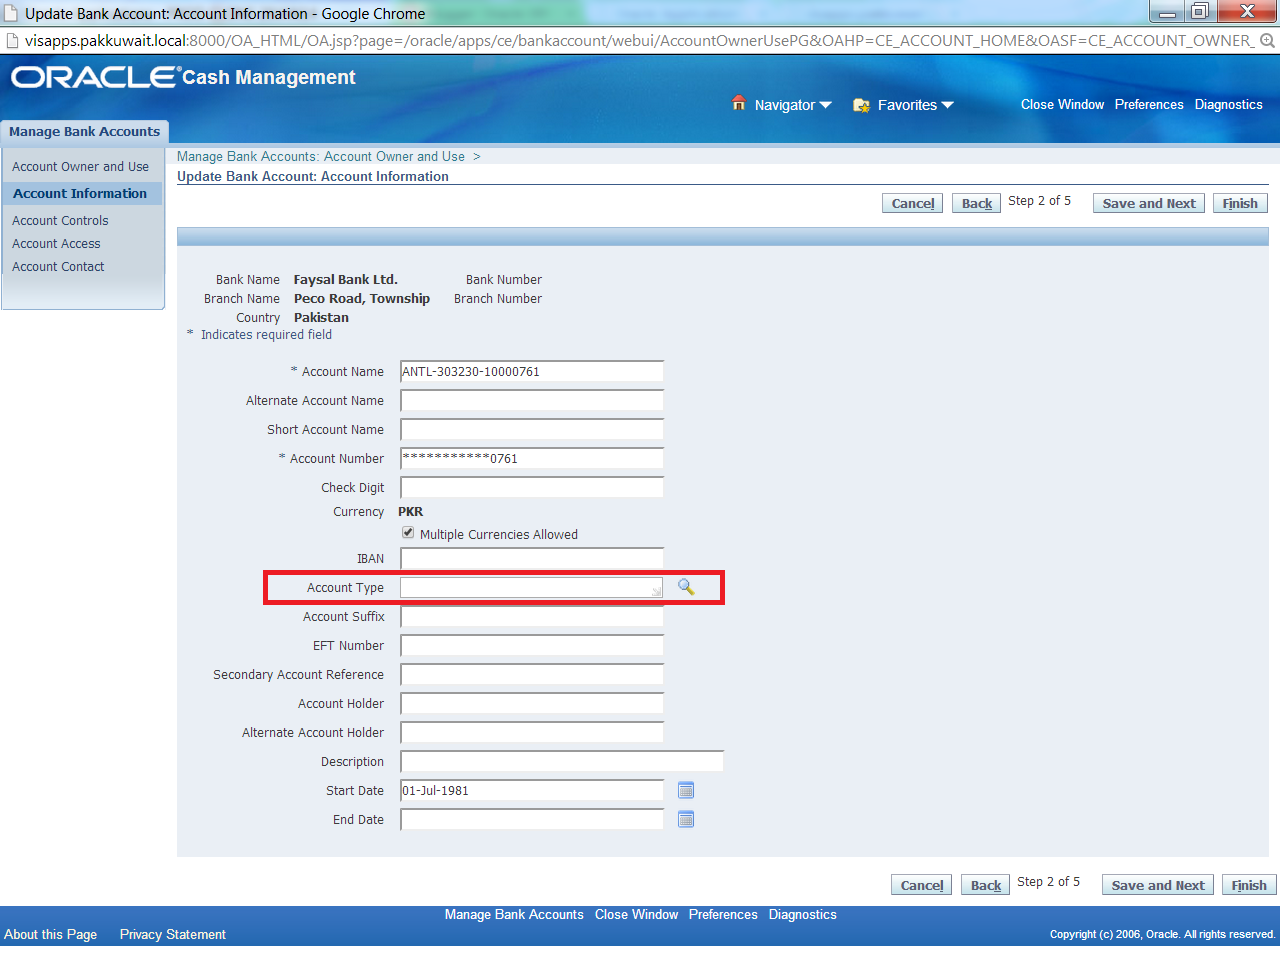 How to define Bank Account type in Oracle Cash Management r